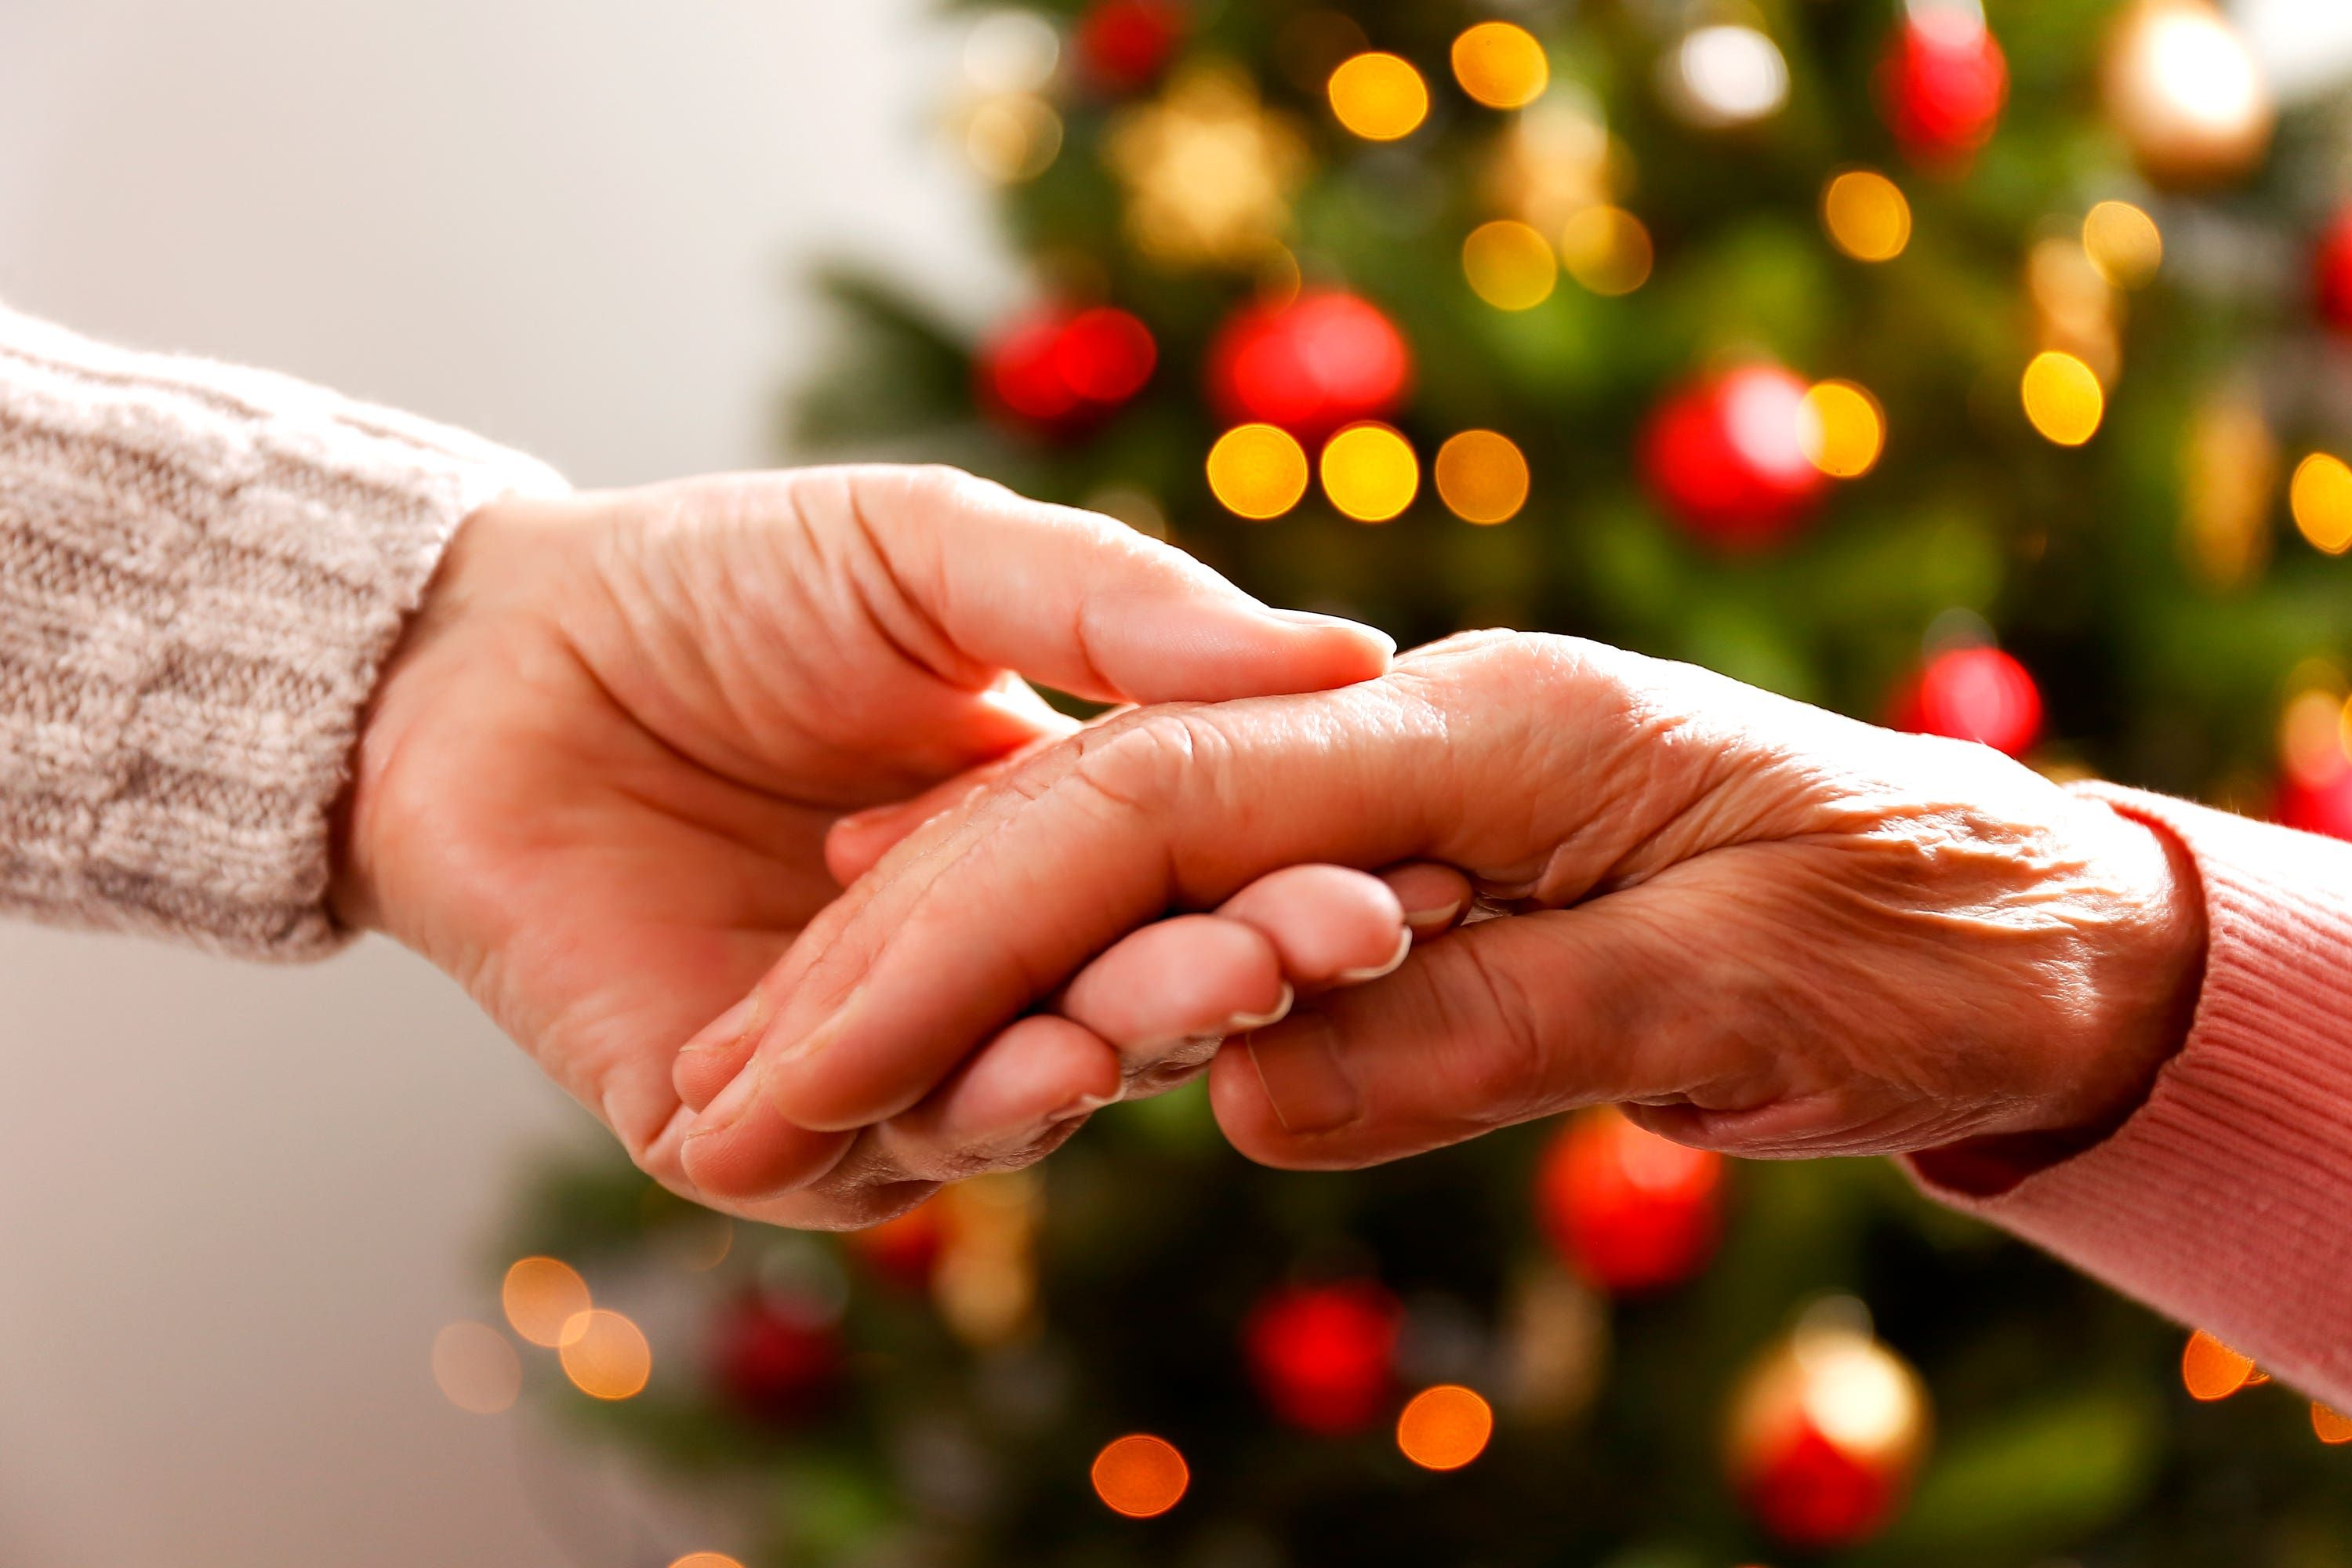 Ruth Langsford: 8 tips for families living with dementia this Christmas